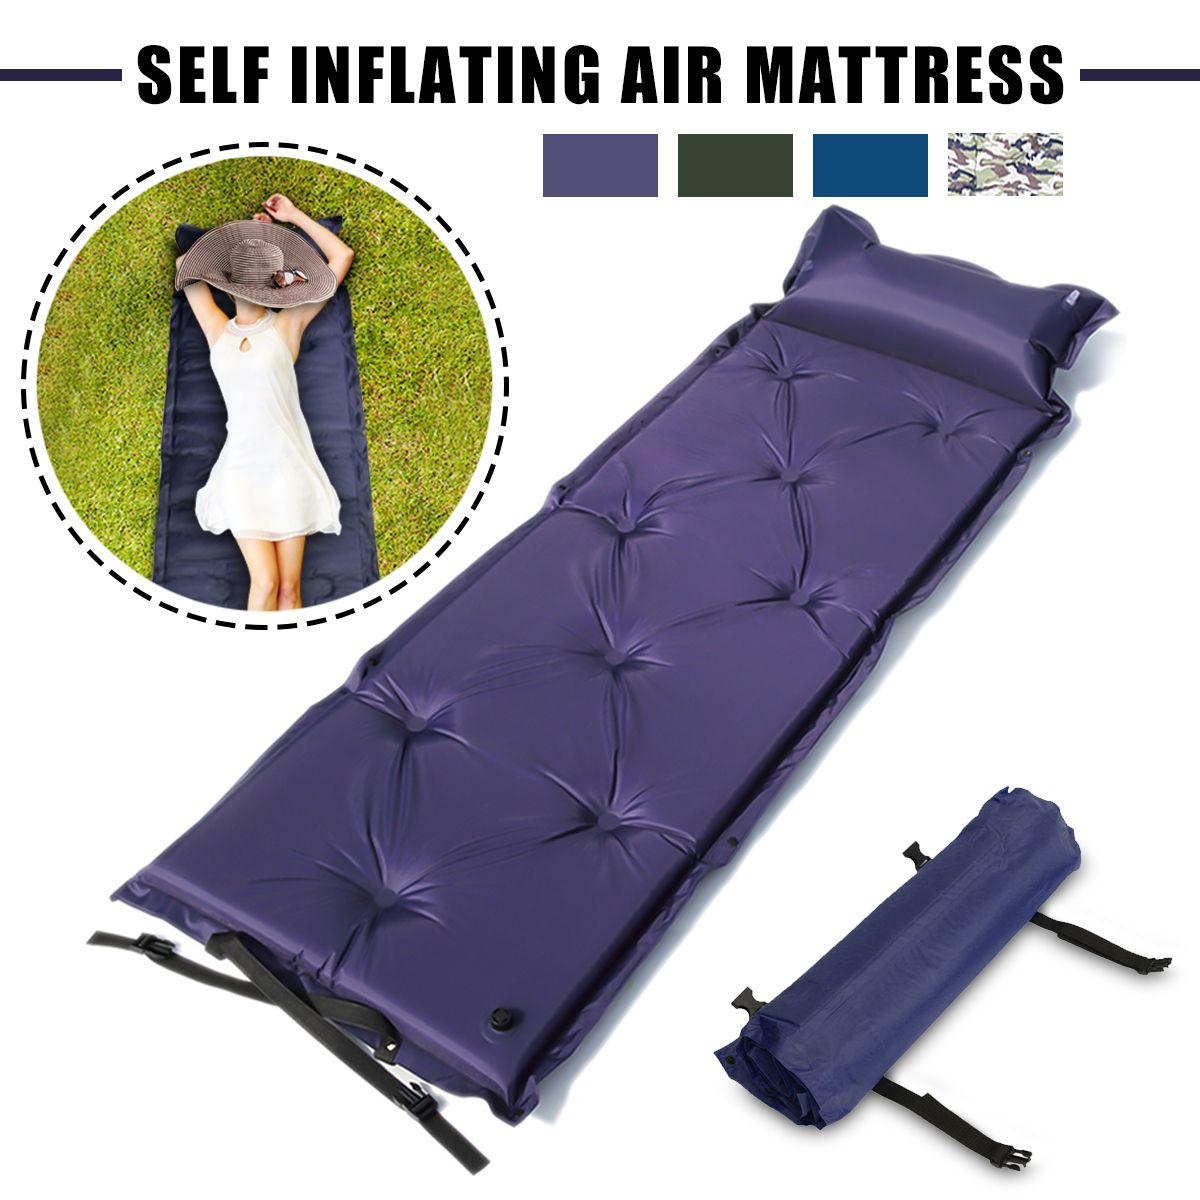 Outdoor Polyester Camping Self Inflating Air Mat Mattress Pad Pillow Waterproof Hiking Sleeping Bed 4 Colors Walmart Com Air Mattress Camping Inflatable Bed Mattress Pad